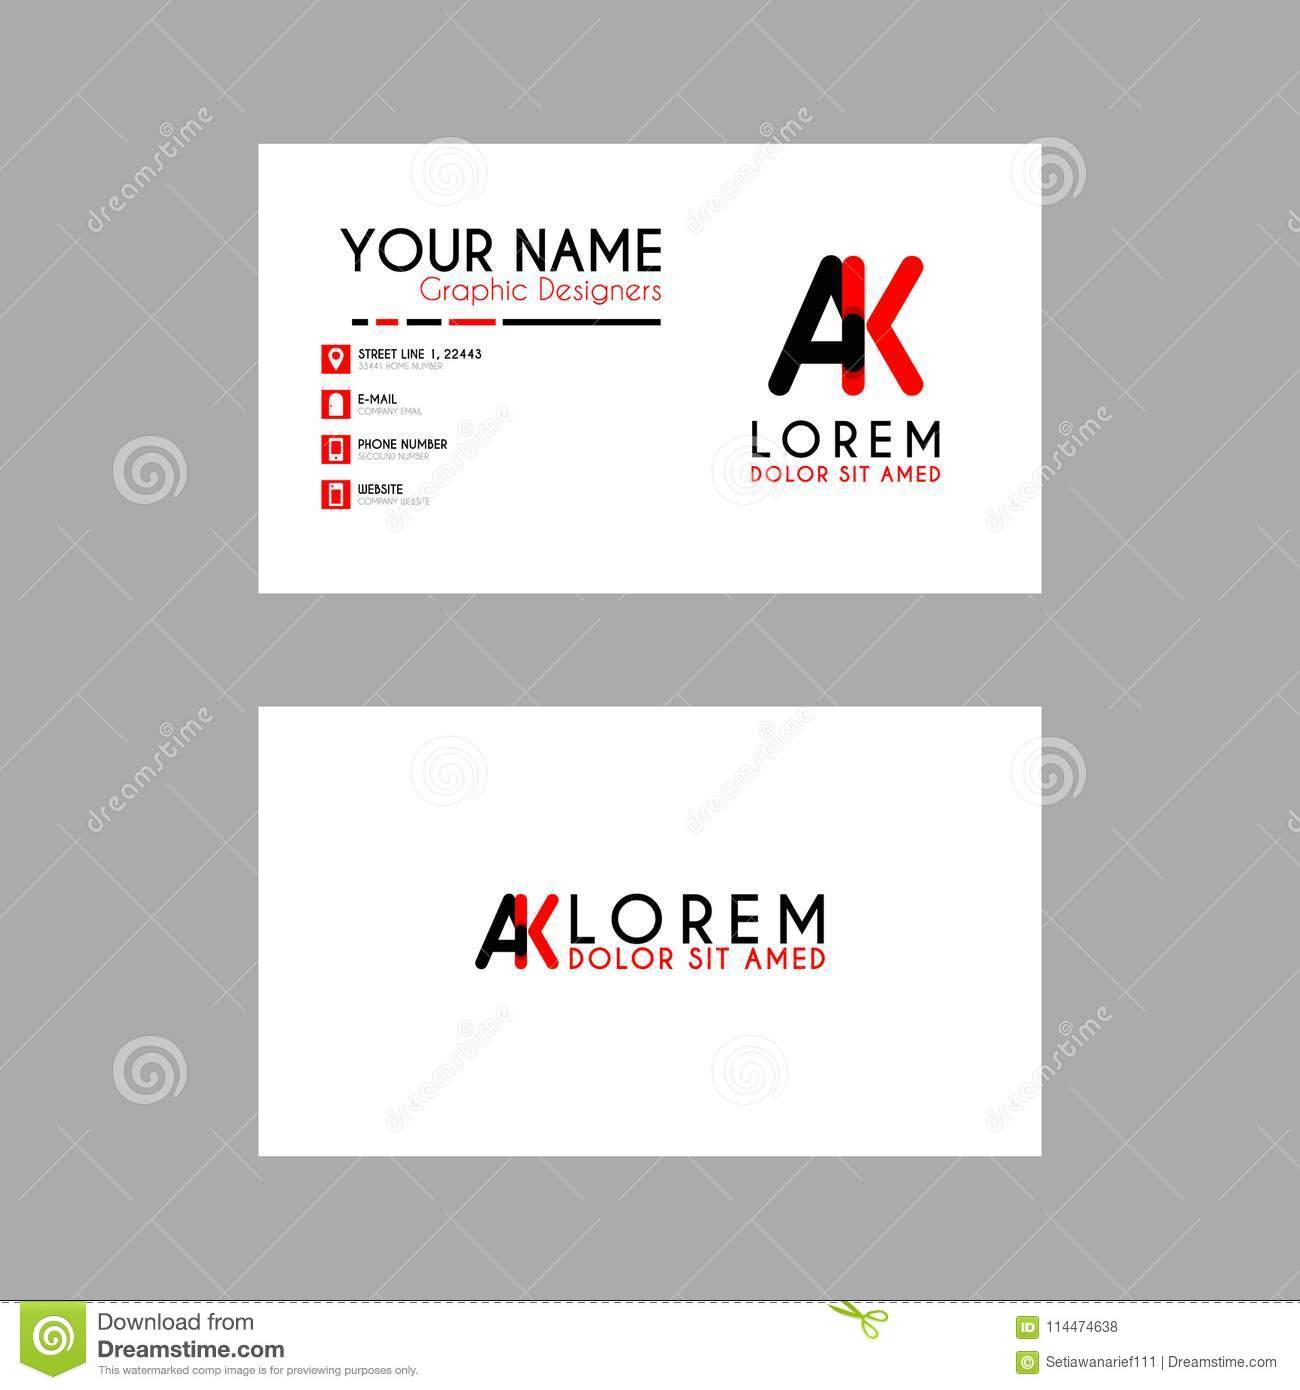 download comp - Simple Business Card